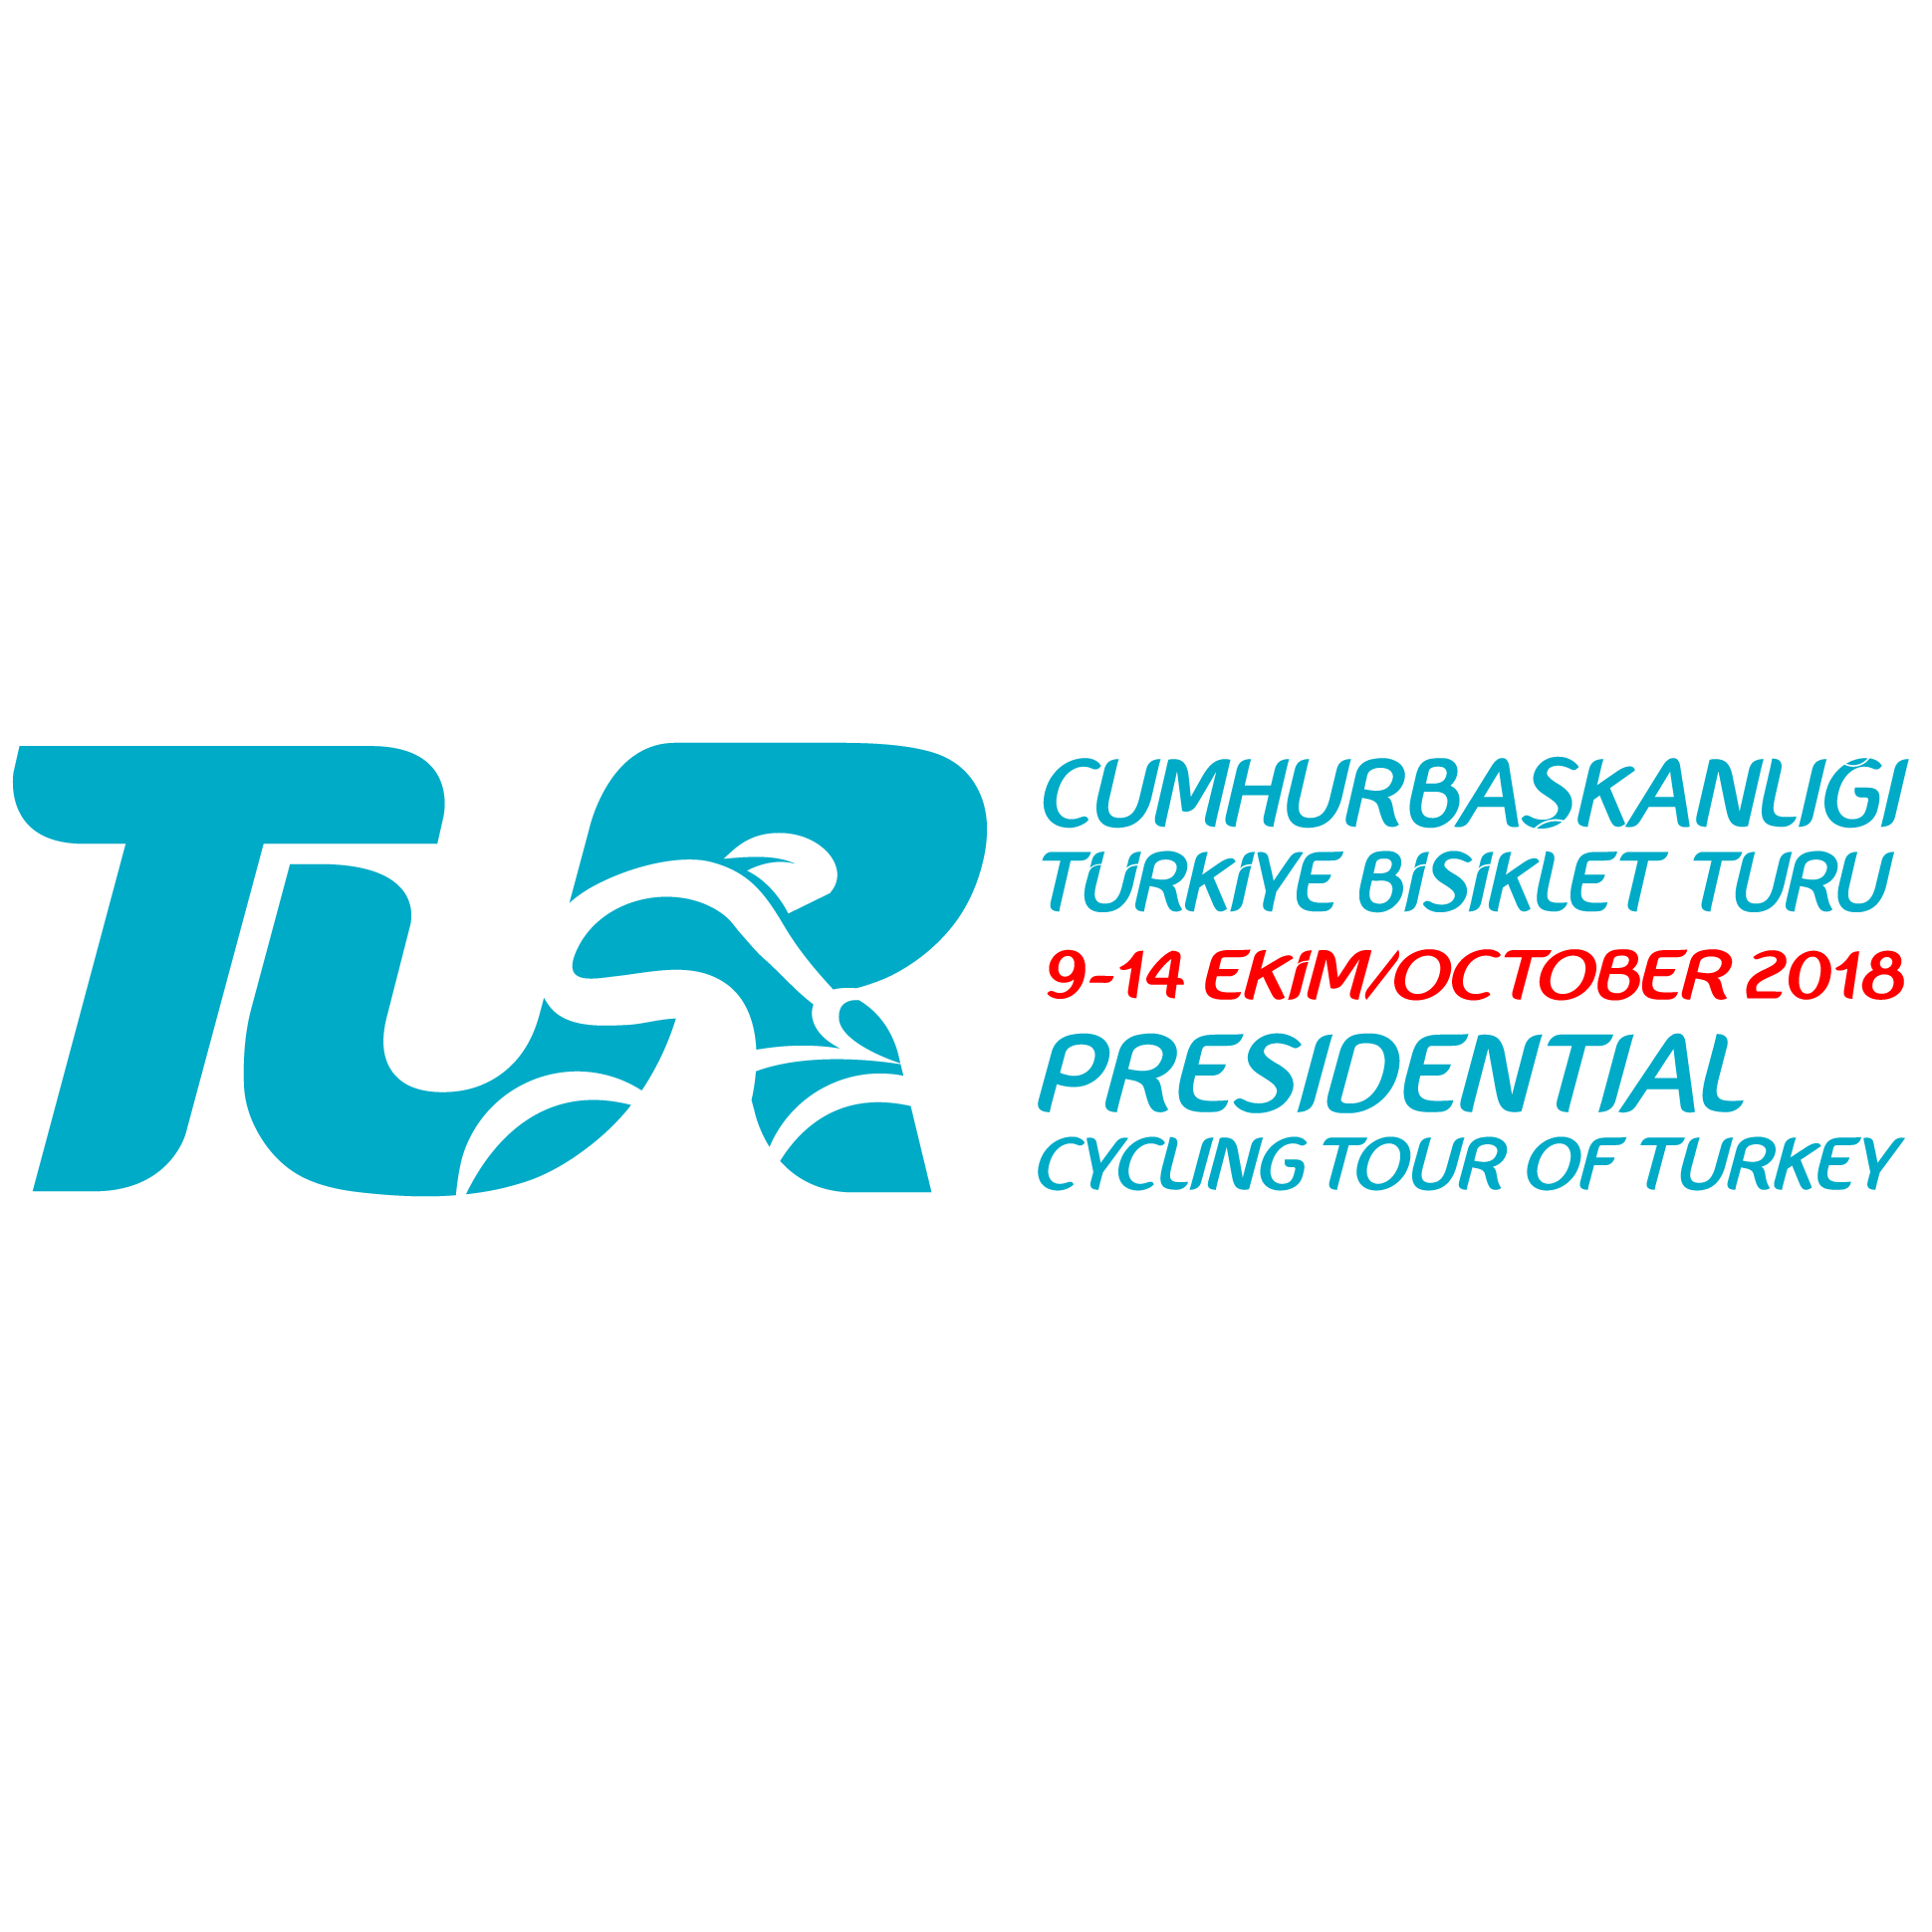 2018 UCI Cycling World Tour - Tour of Turkey